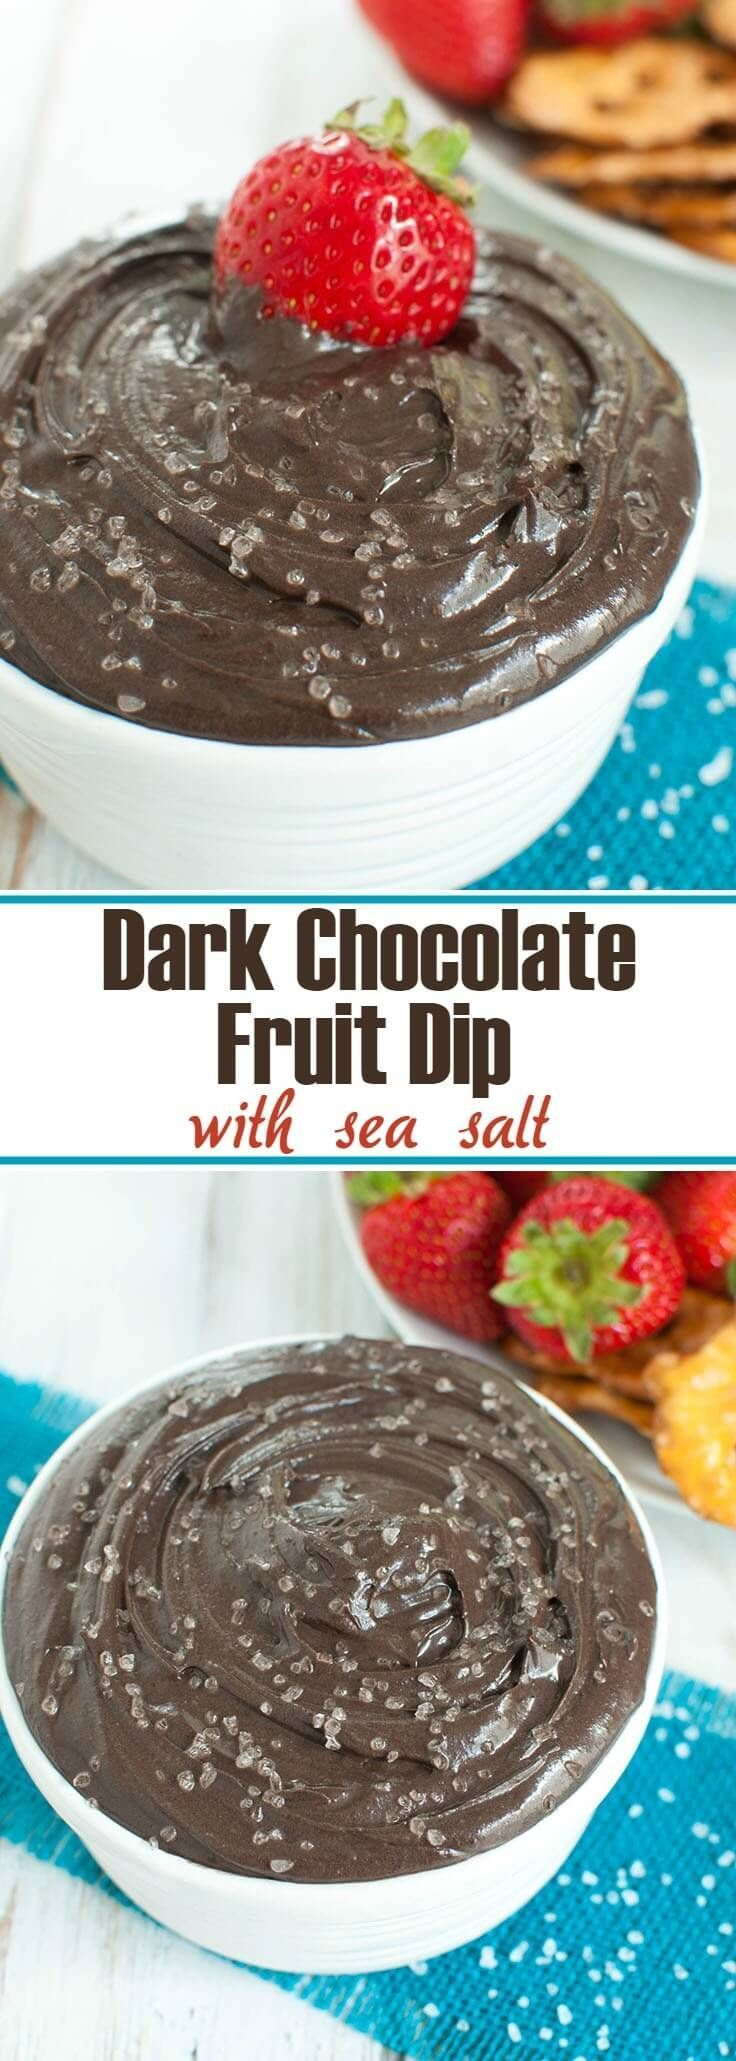 Easy 5 ingredient dessert recipe. A touch of sea salt brings out the rich chocolate in this Dark Chocolate Fruit Dip with sea salt. Great party dip with fruit, cookies or pretzels. Perfect recipe for a potluck too.